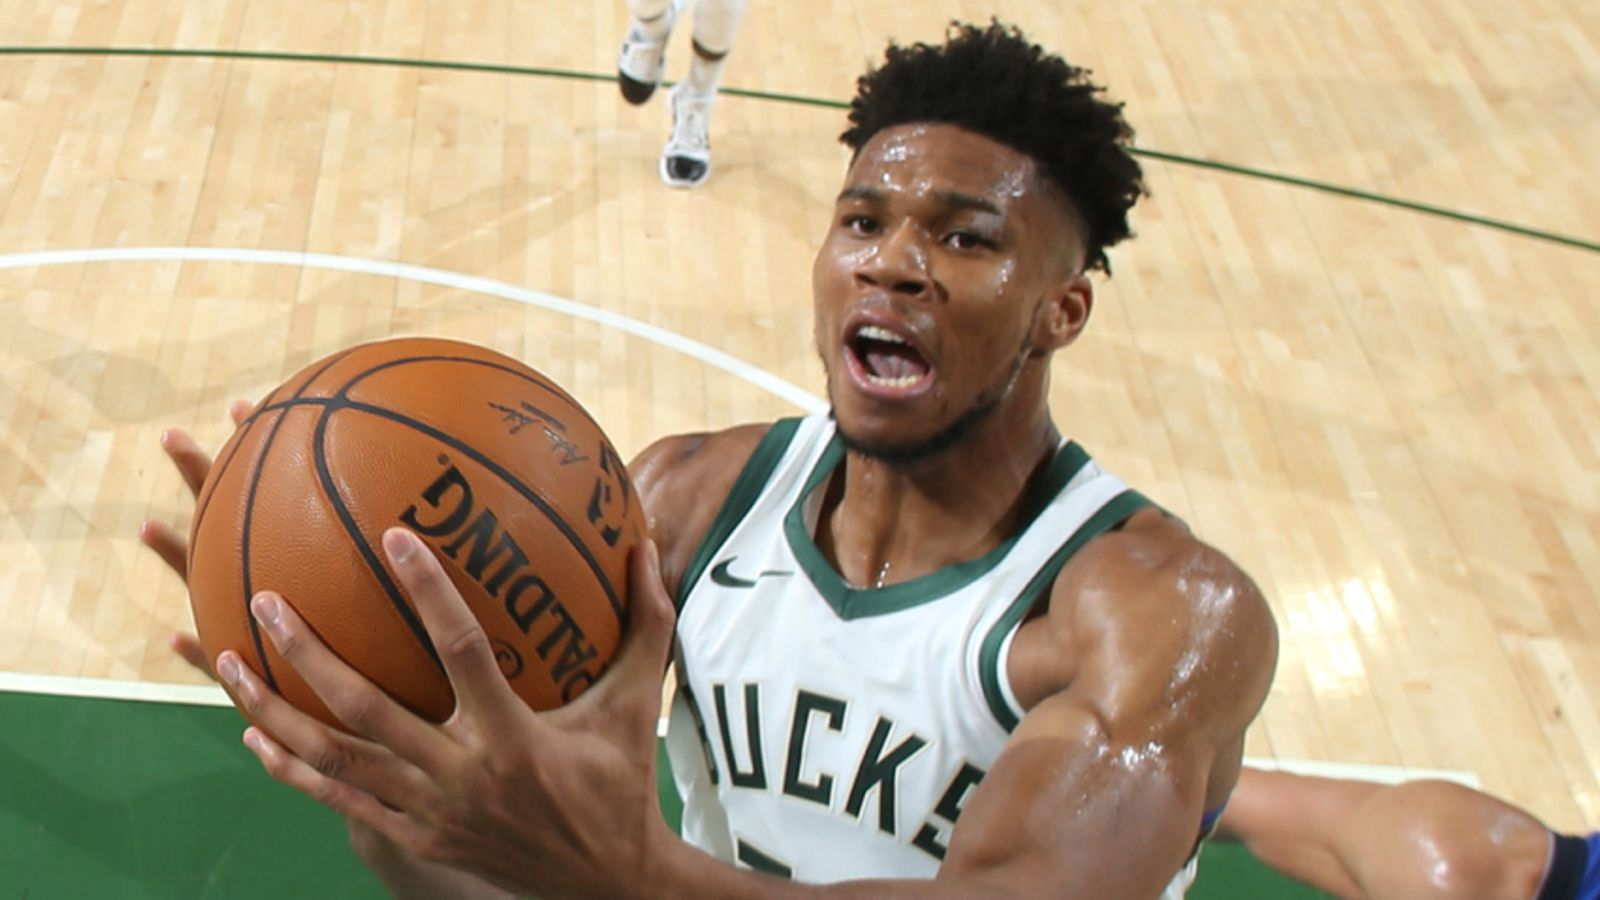 Giannis Antetokounmpo 'bucked the trend' by staying in Milwaukee, says BJ Armstrong